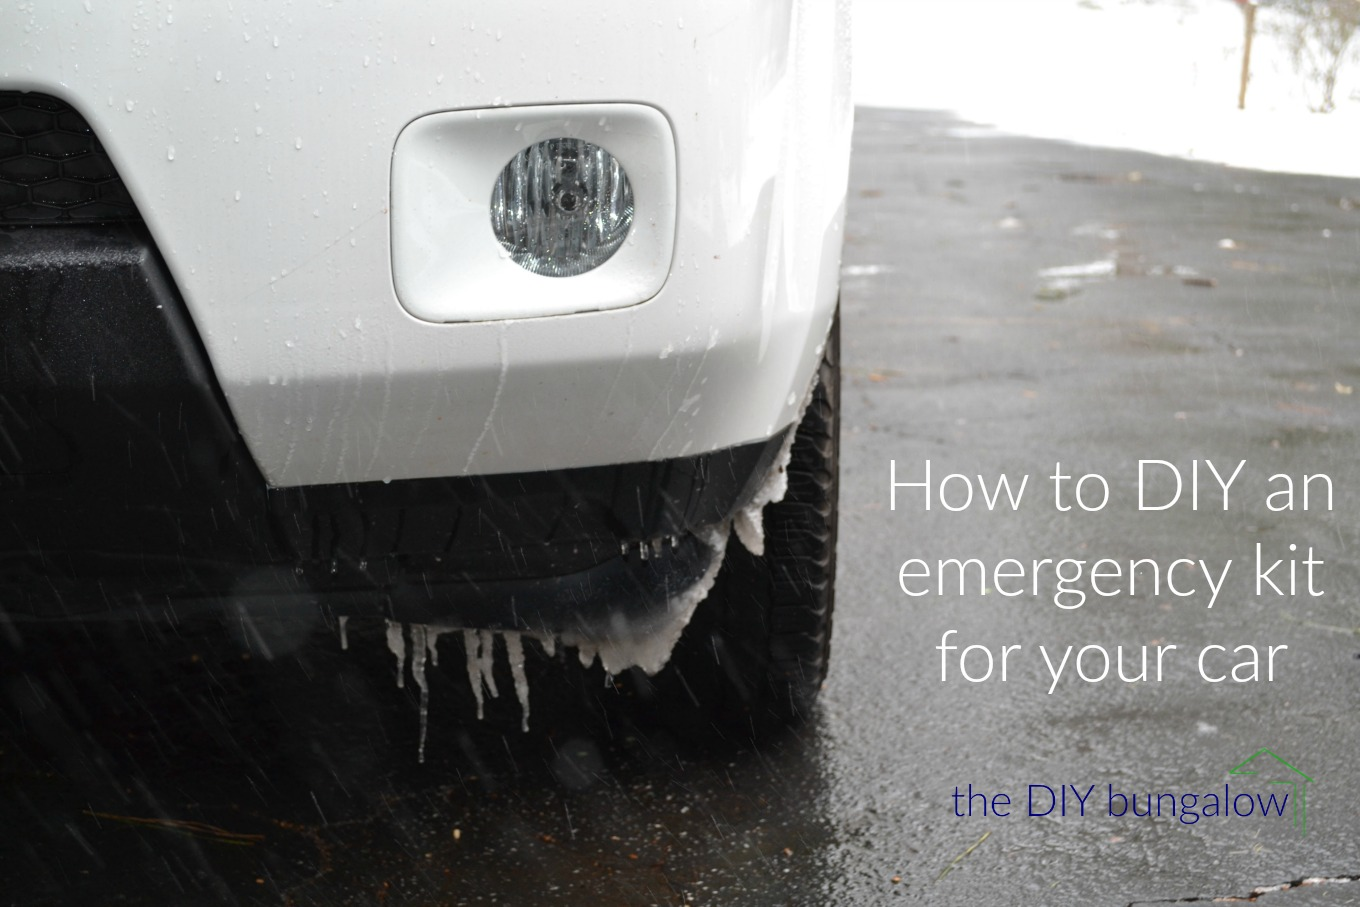 How to DIY an emergency kit for your car - thediybungalow.com